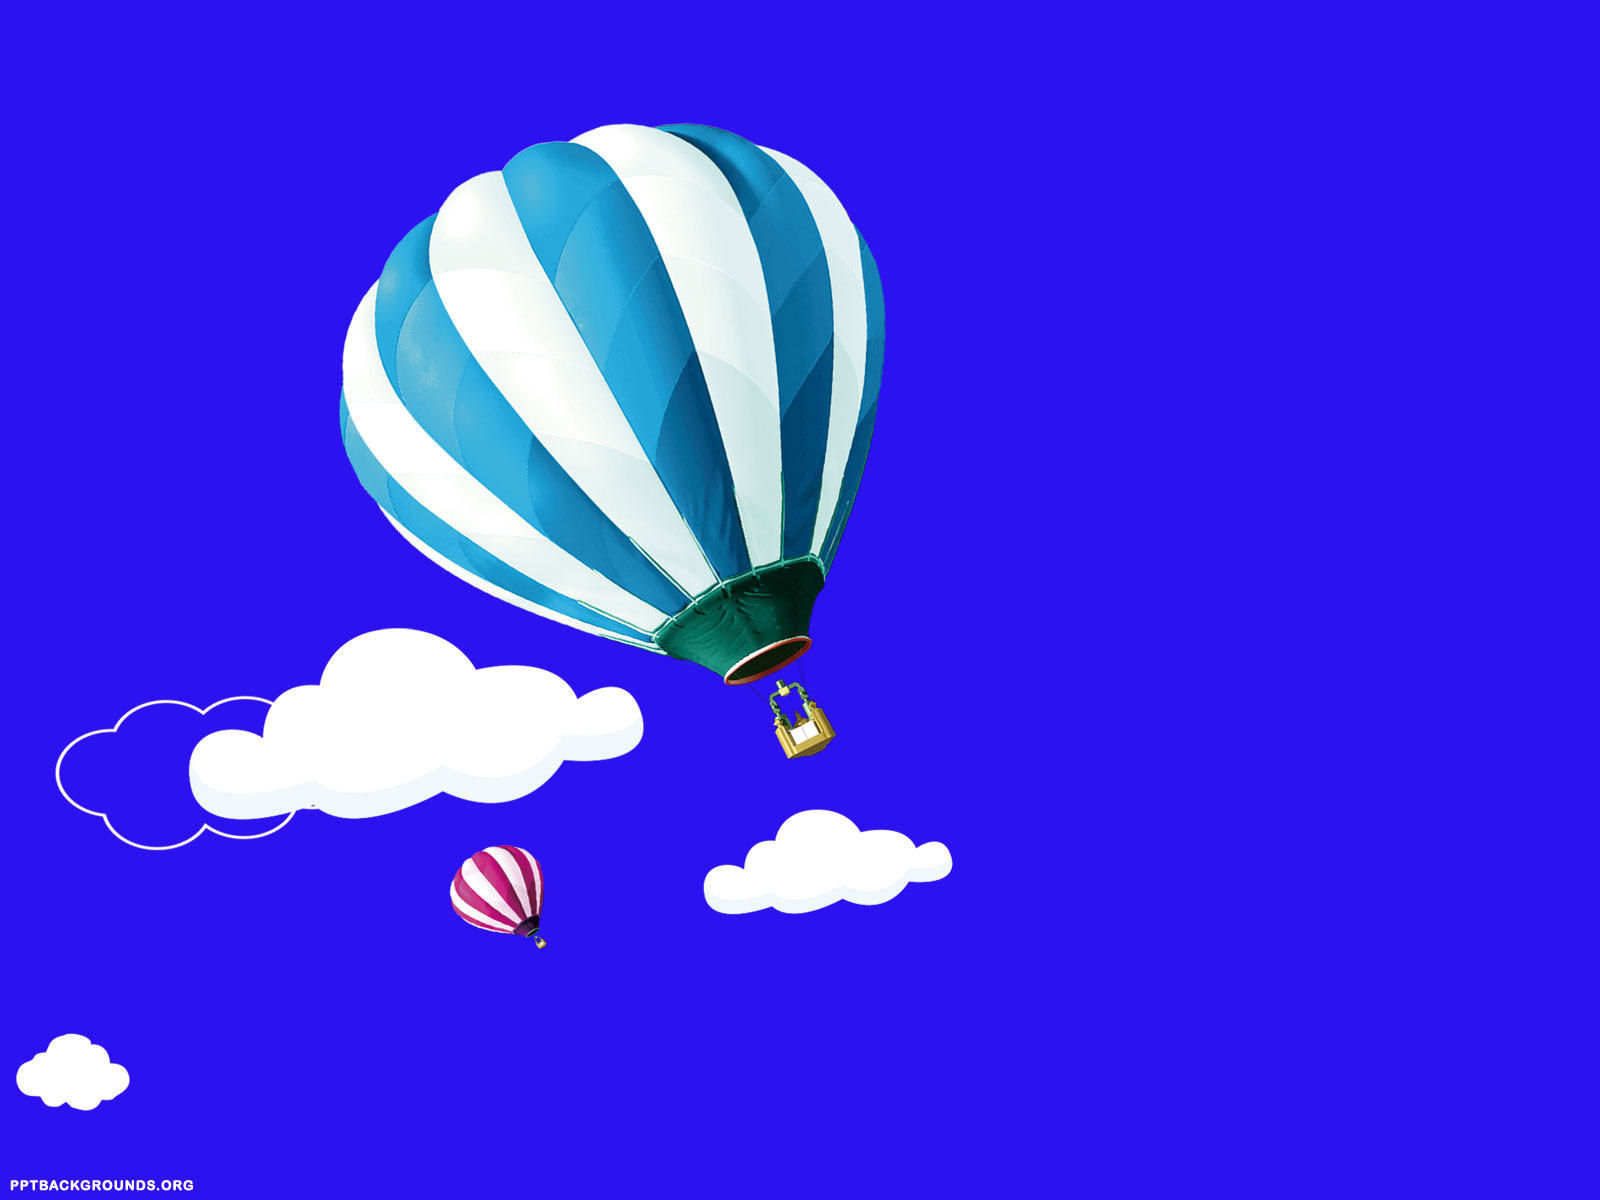 1600x1200 Free Hot Air Balloons With Clouds Backgrounds For PowerPoint